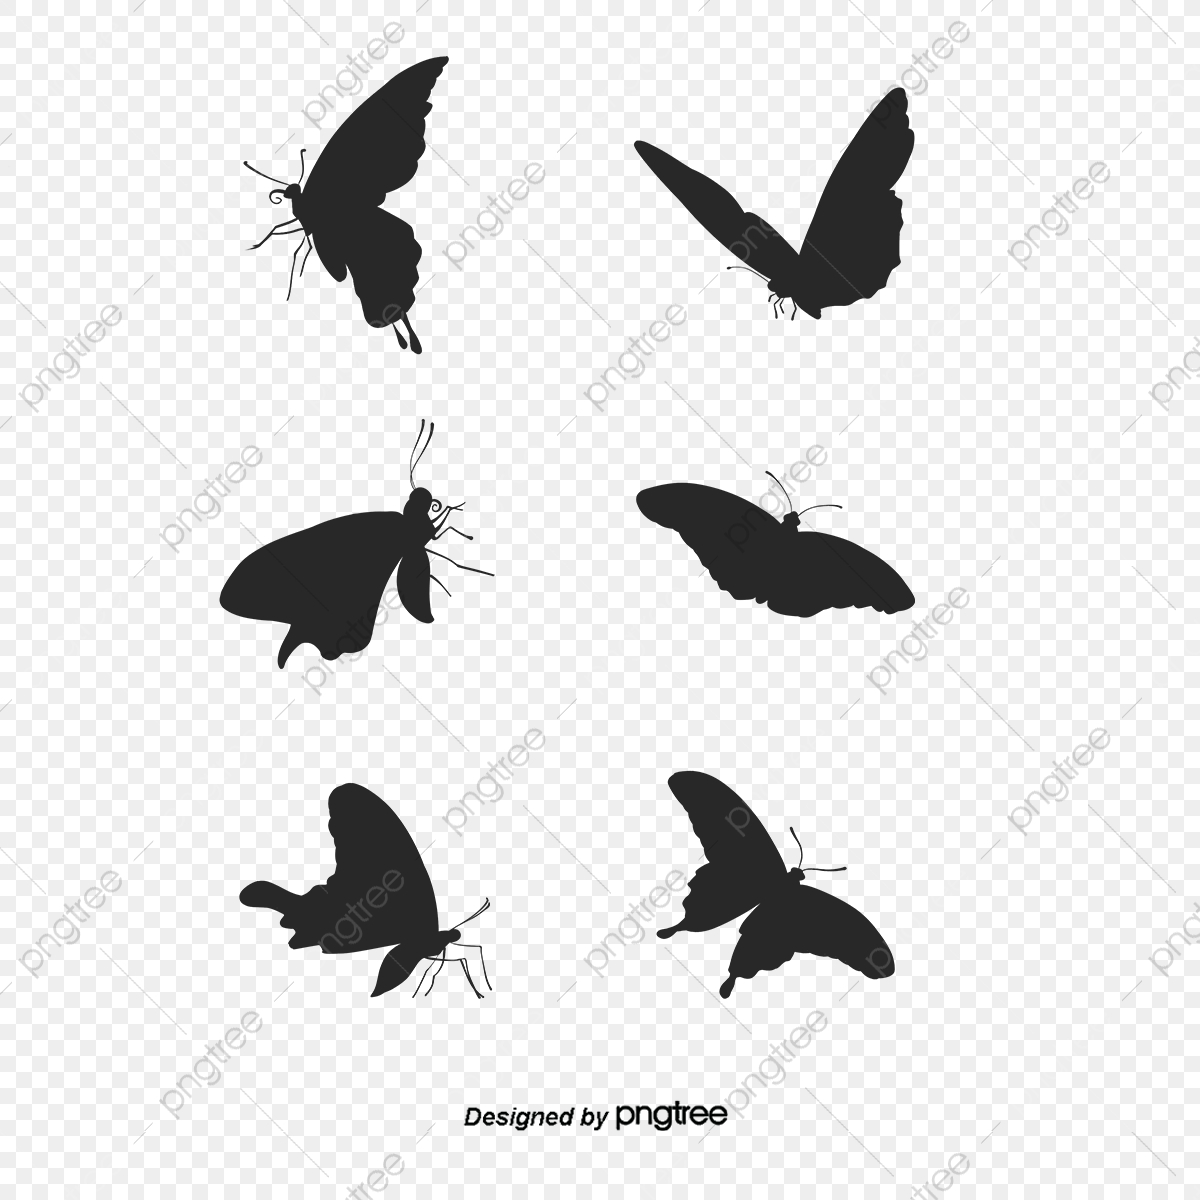 Butterfly Silhouette, Butterfly Clipart, Silhouette Clipart PNG.